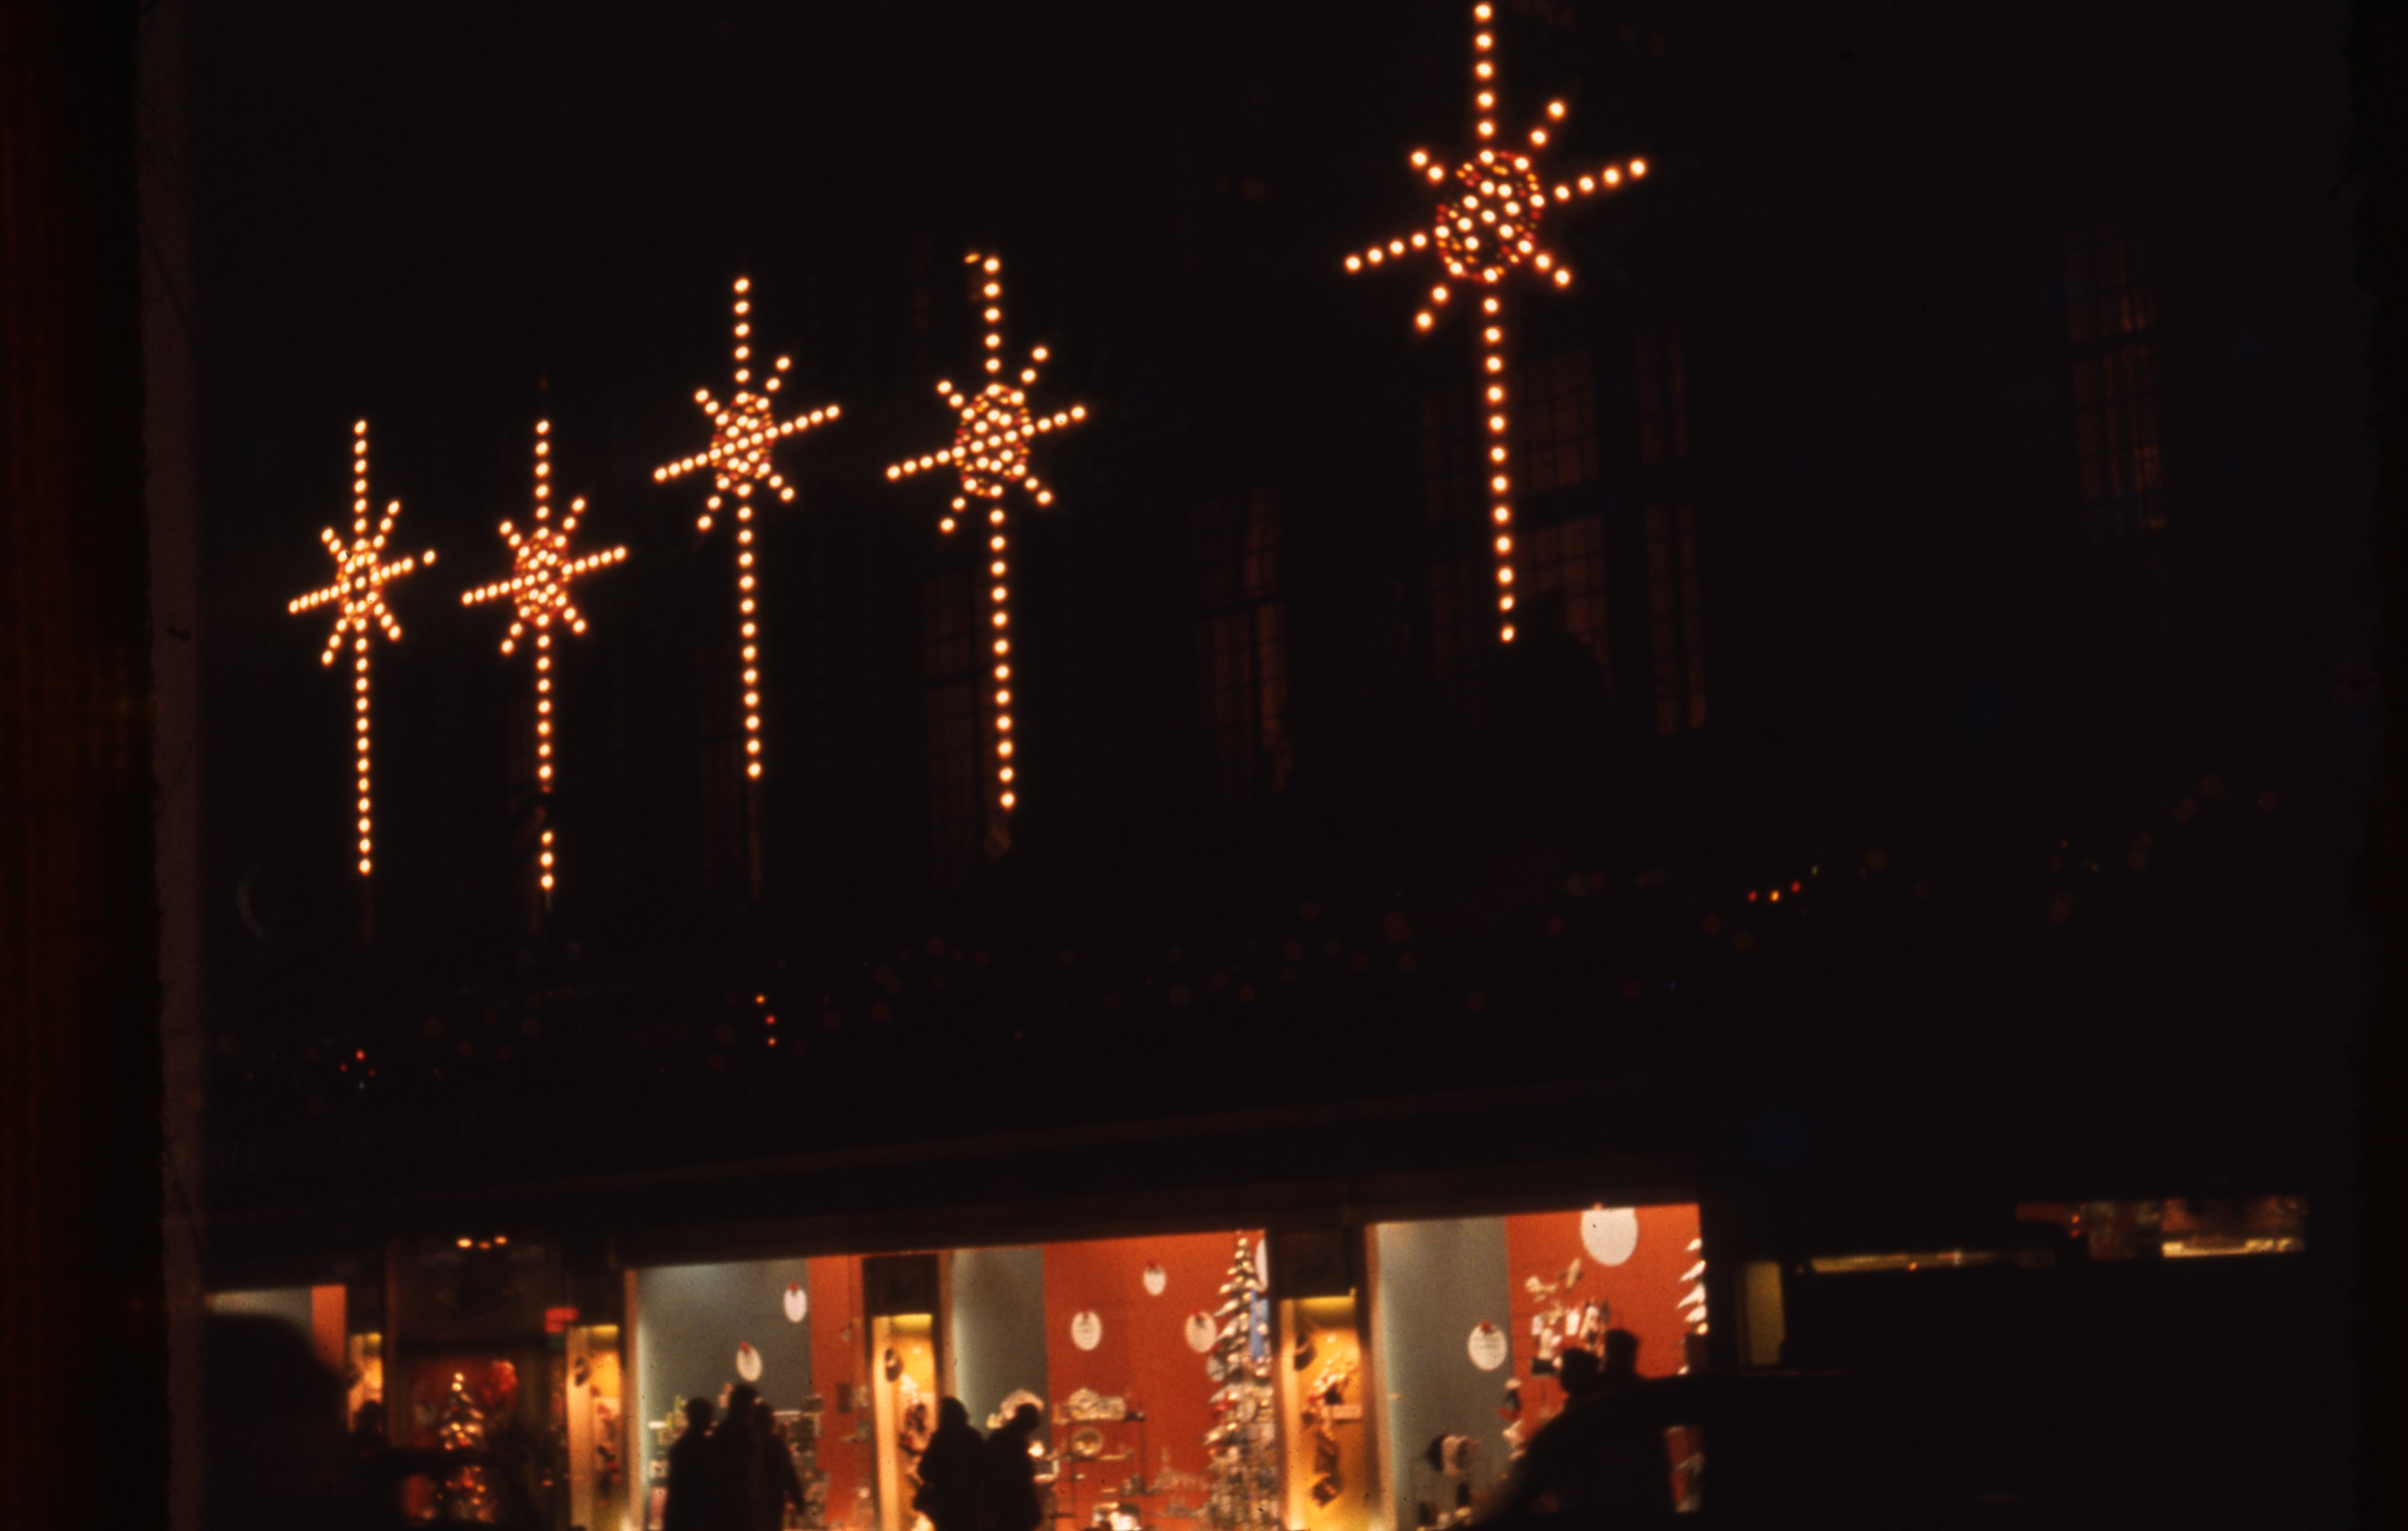 This is a festive window display in Fenwick's of Newcastle upon Tyne. This is a 35mm slide. It was taken in 1962.